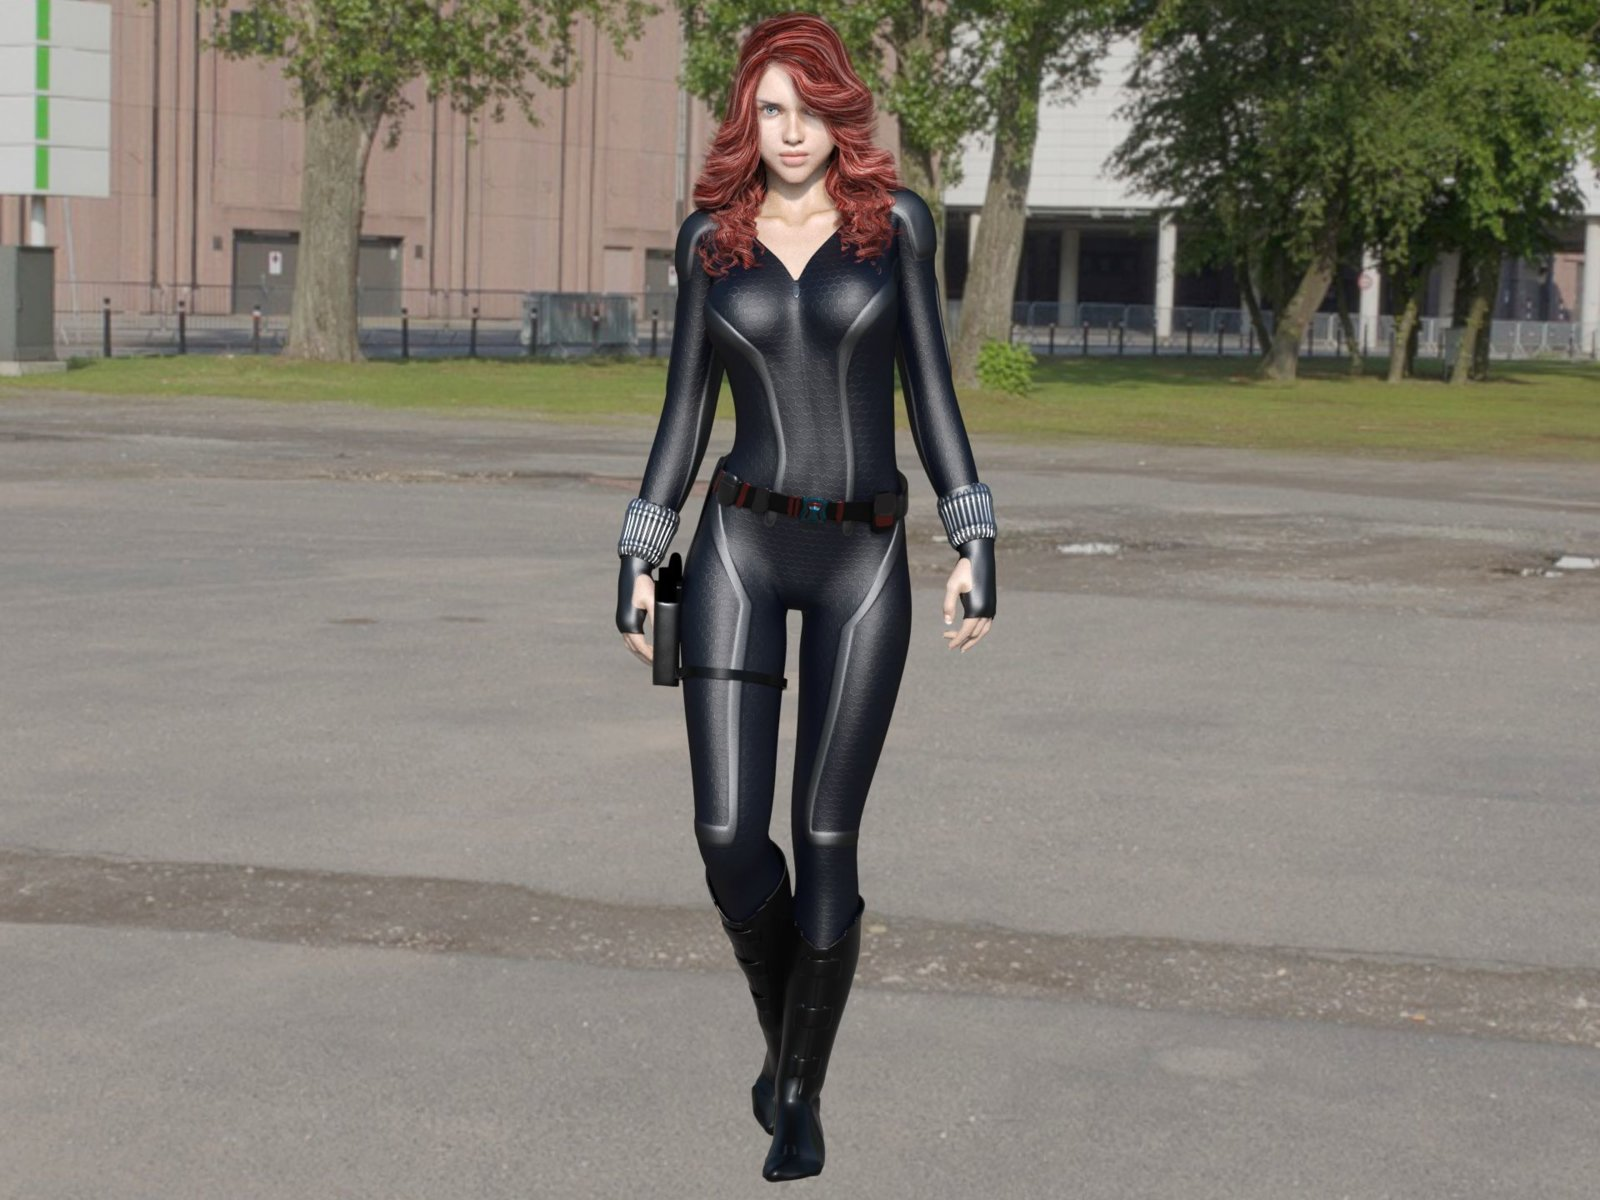 Black Widow Full Costume.jpg